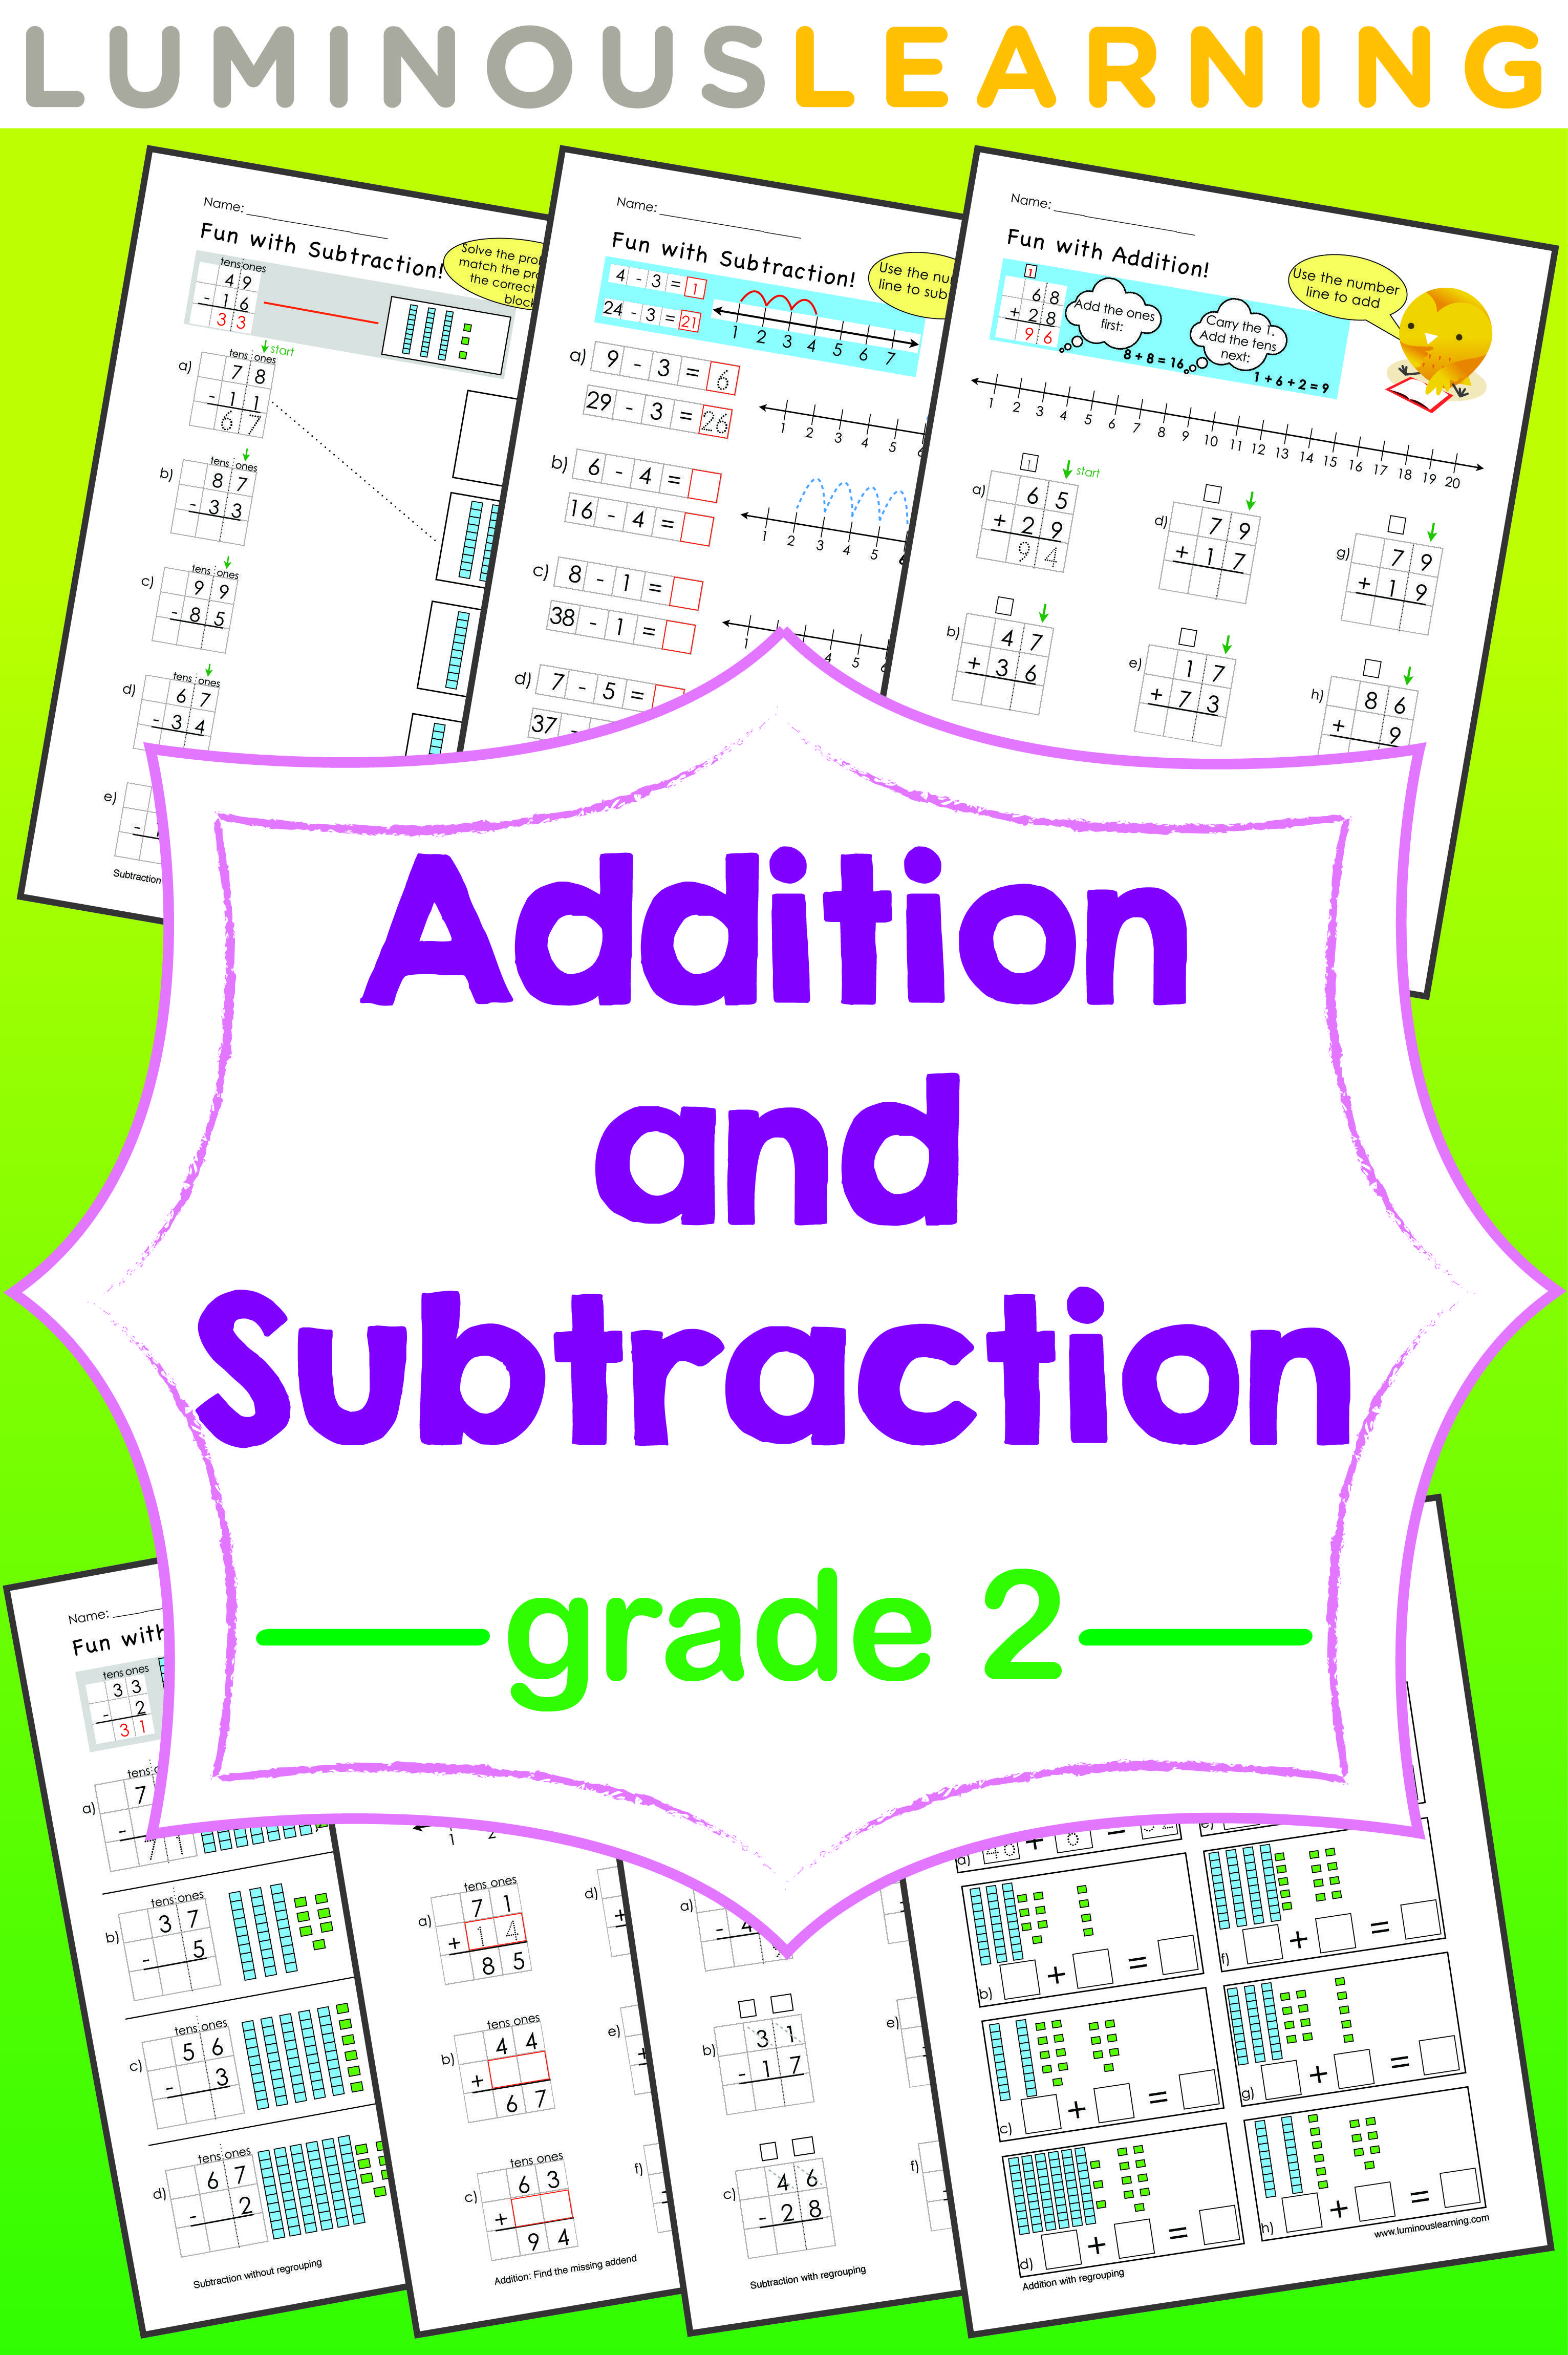 Luminous Learning Grade 2 Addition And Subtraction